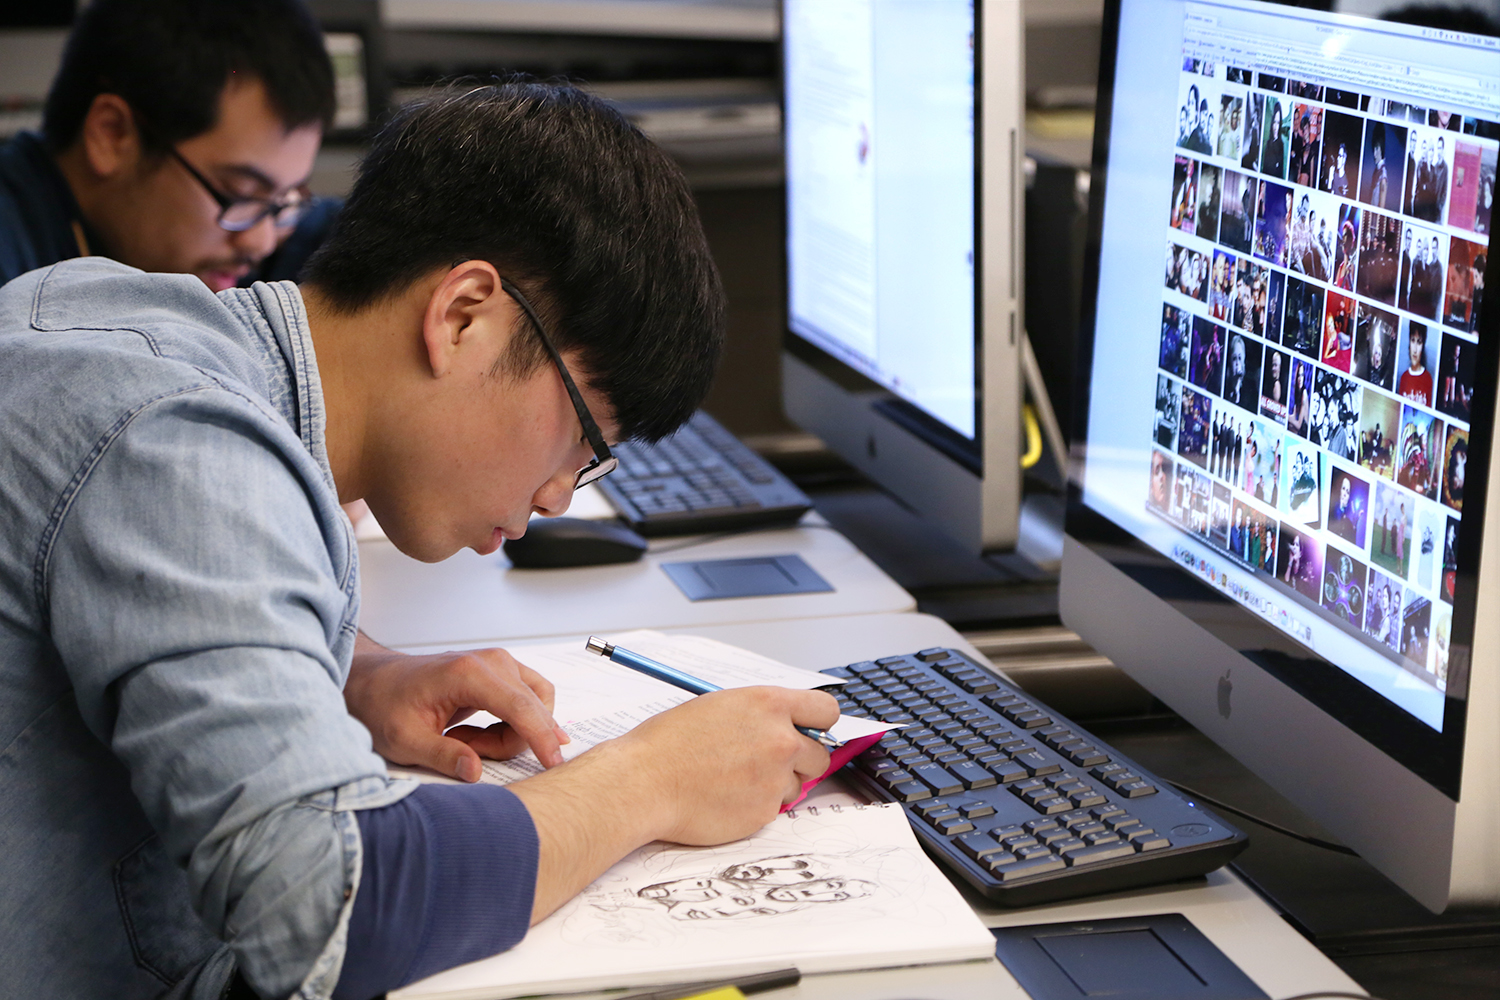 Students work in a graphic design class.